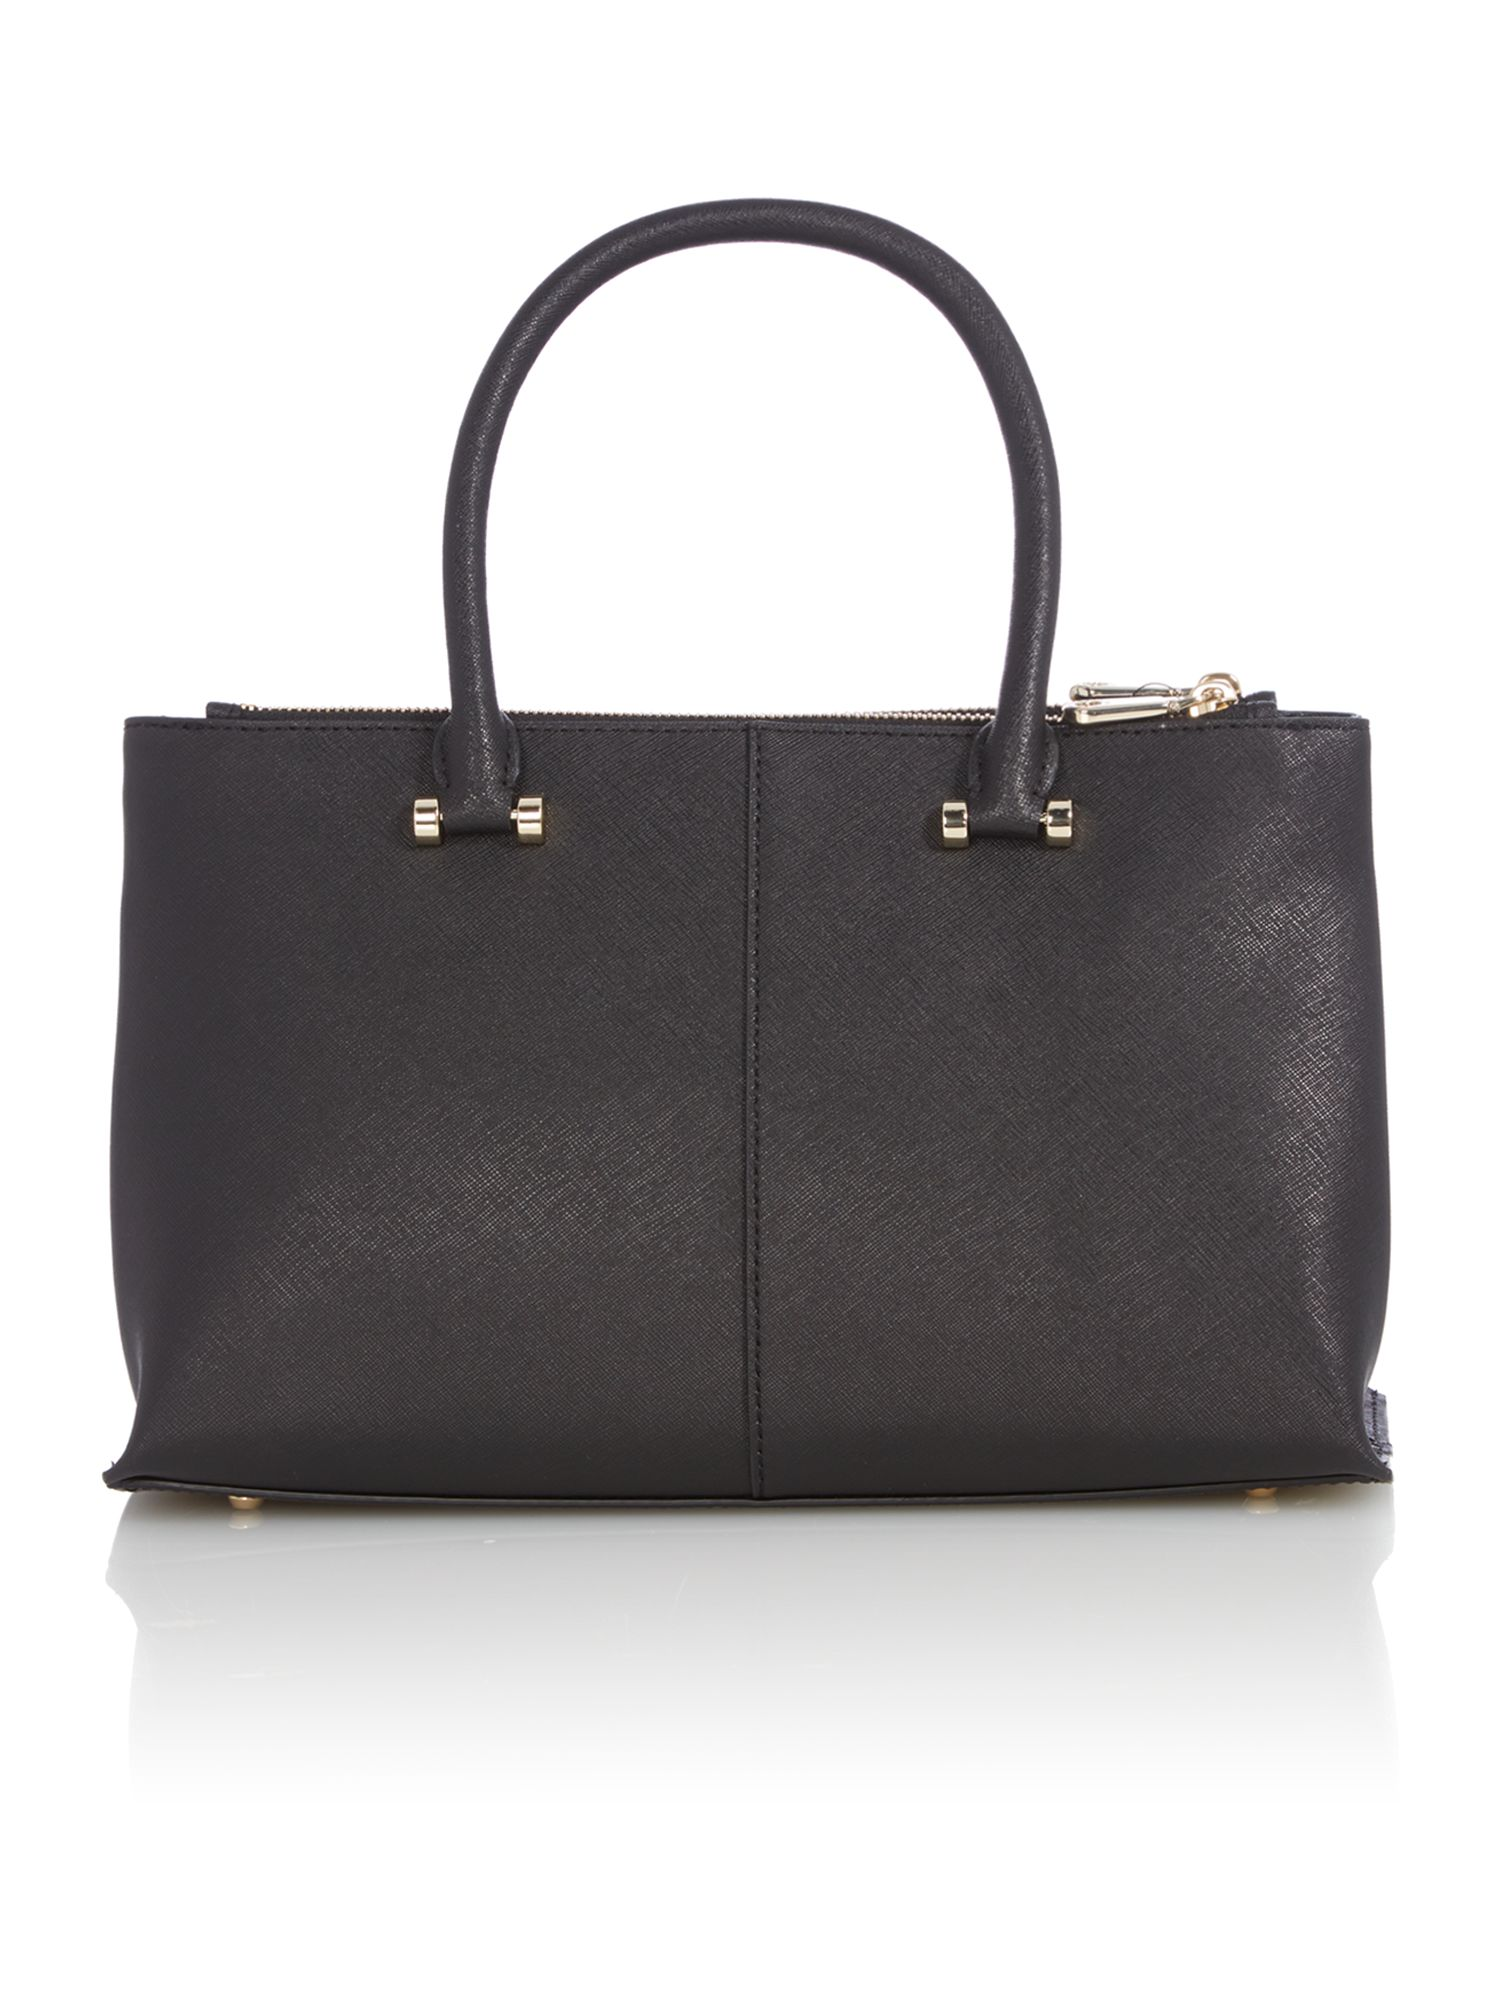 Saffiano black medium double zip tote bag